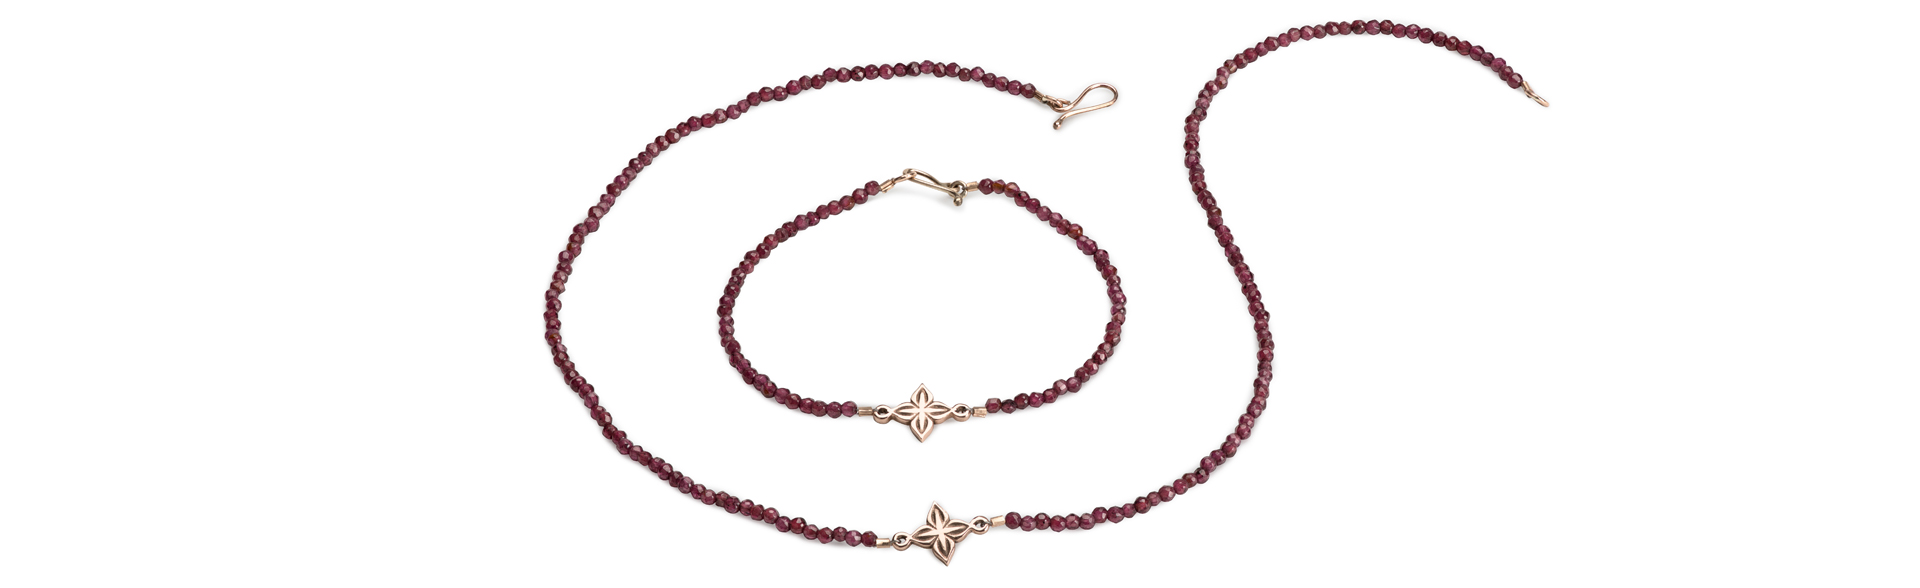 anahita-gold-garnet-necklace2